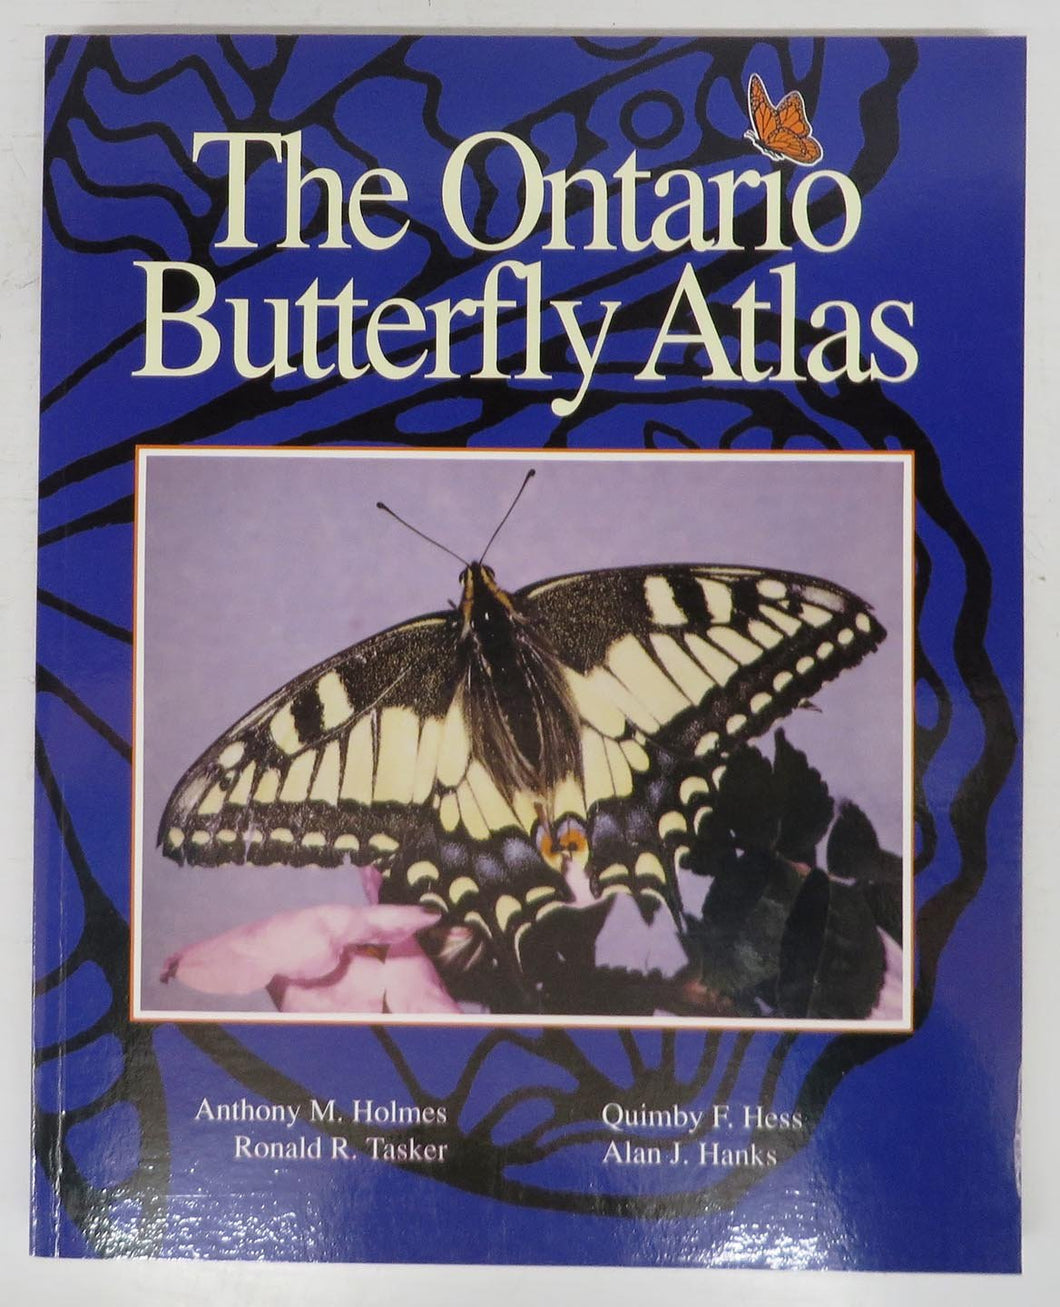 The Ontario Butterfuly Atlas